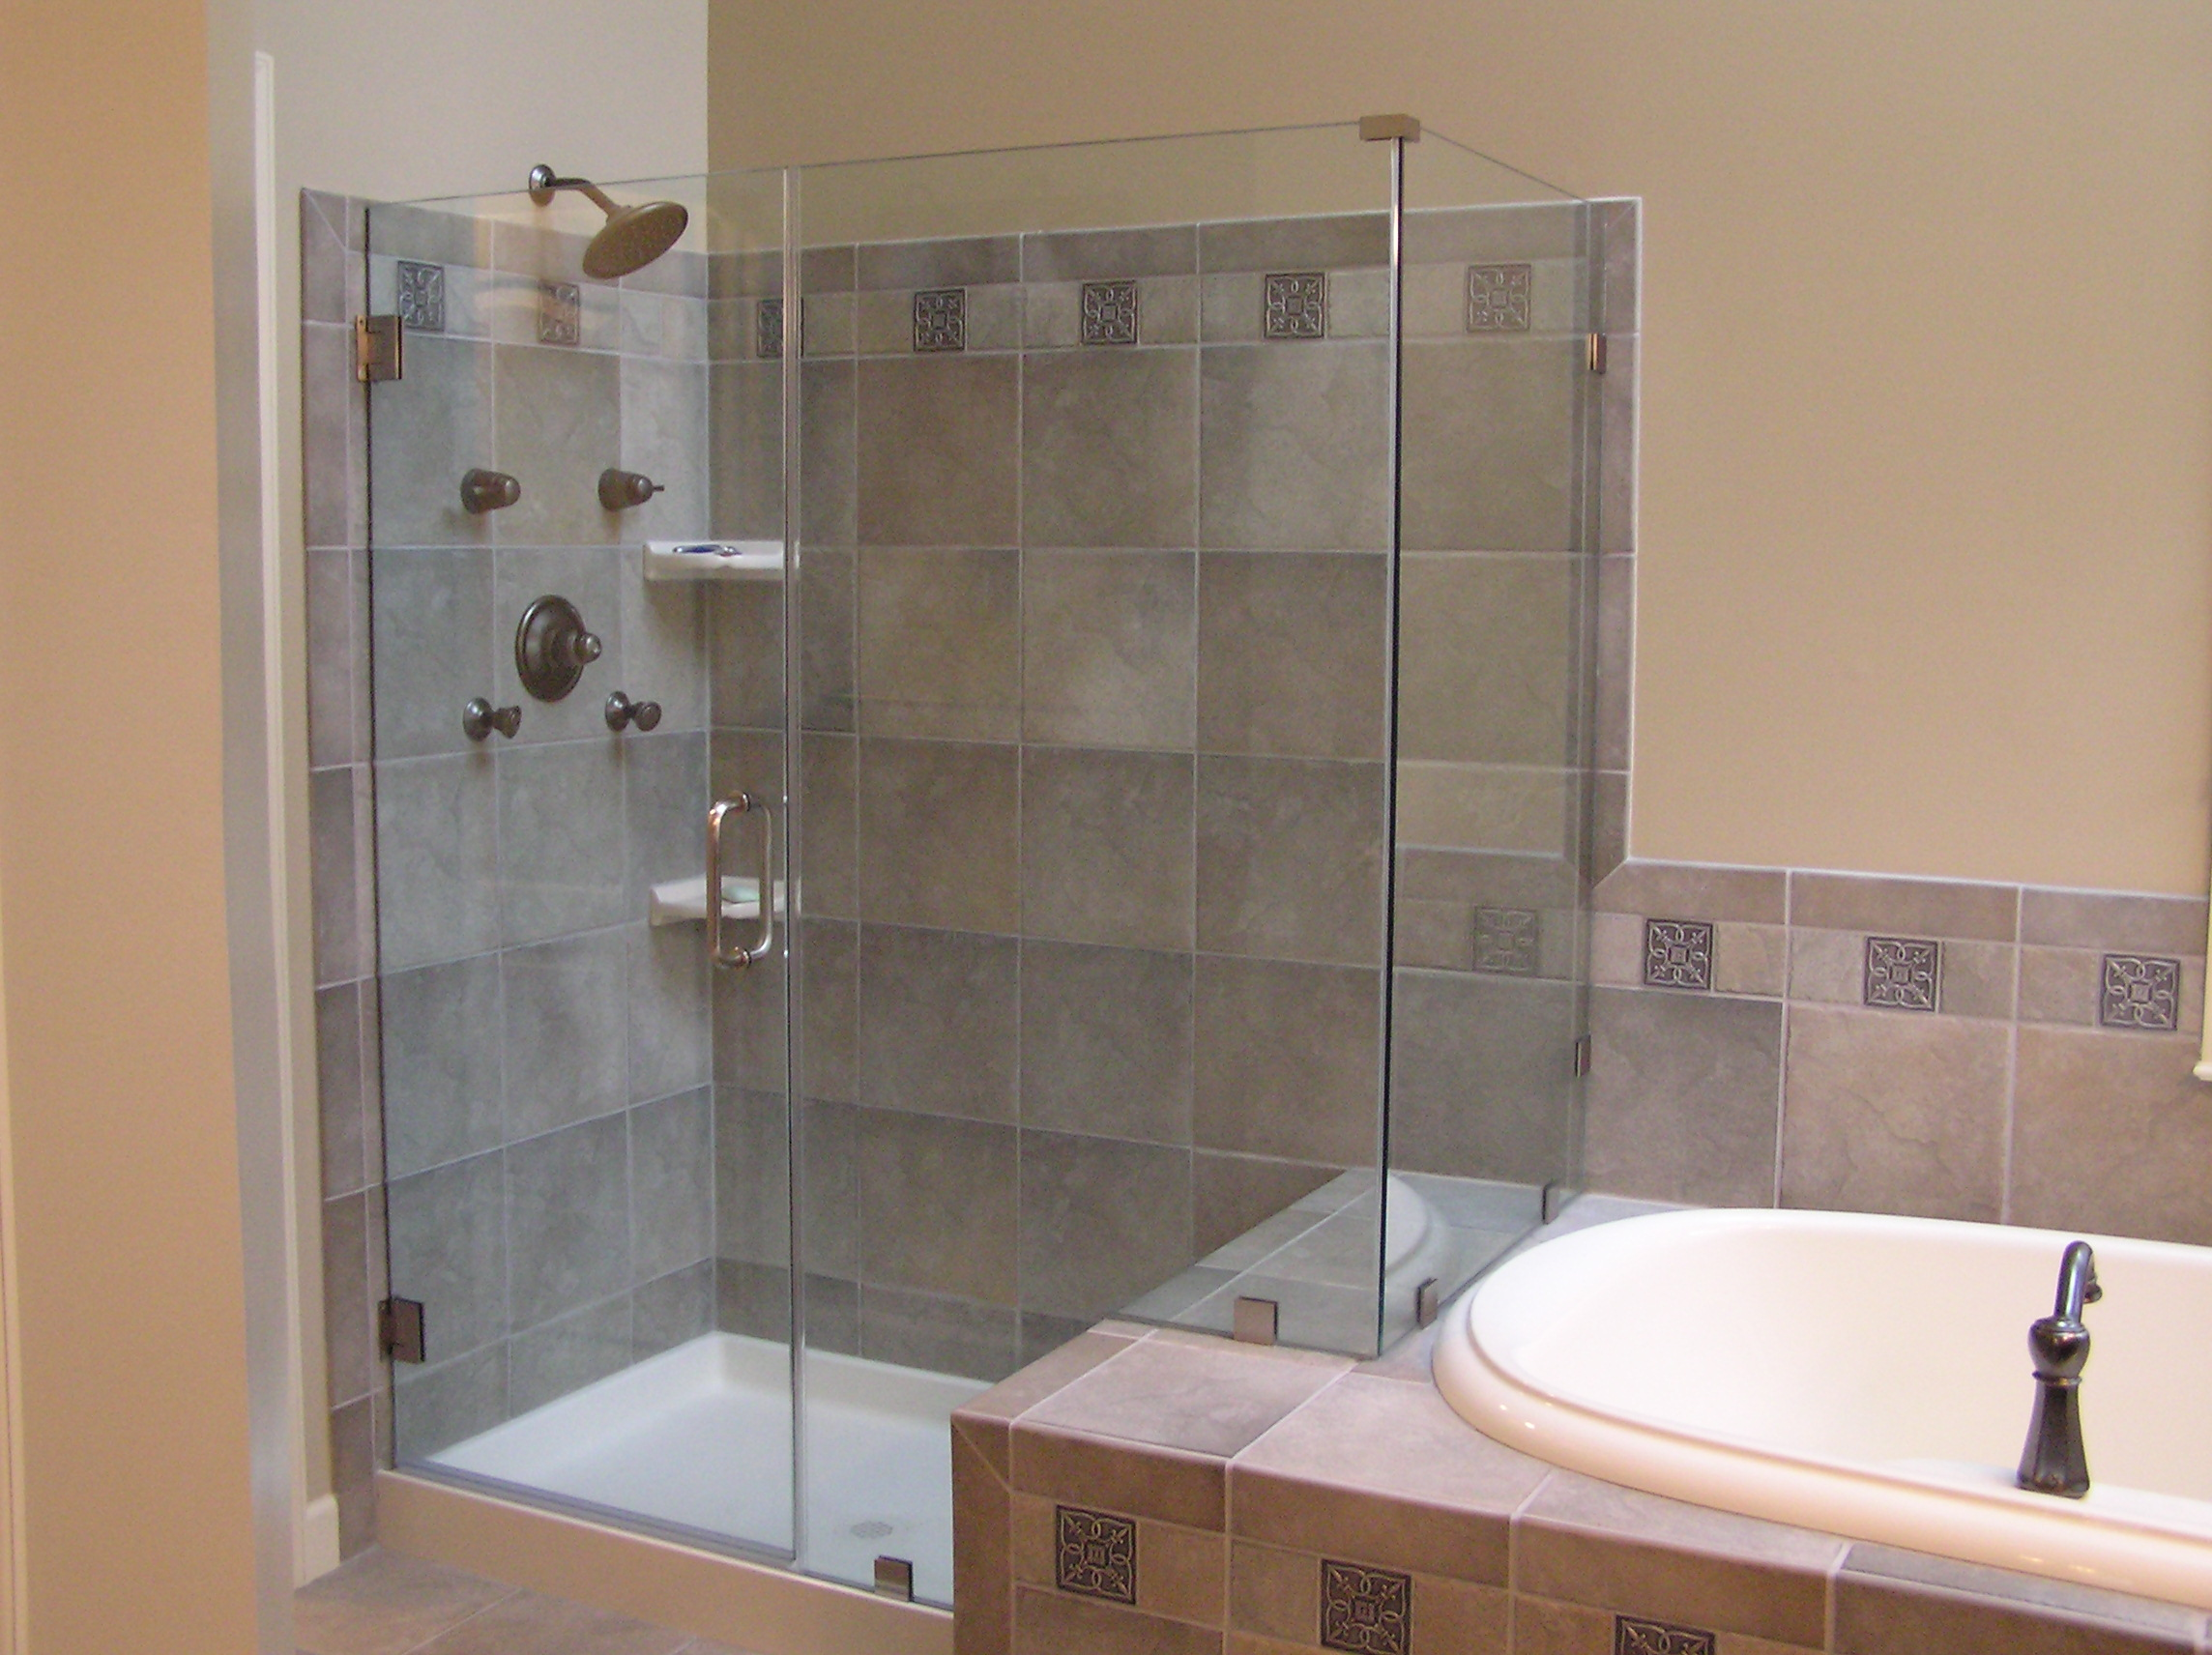 Bathroom Remodel Gallery small bathroom remodel ideas pictures - large and beautiful photos